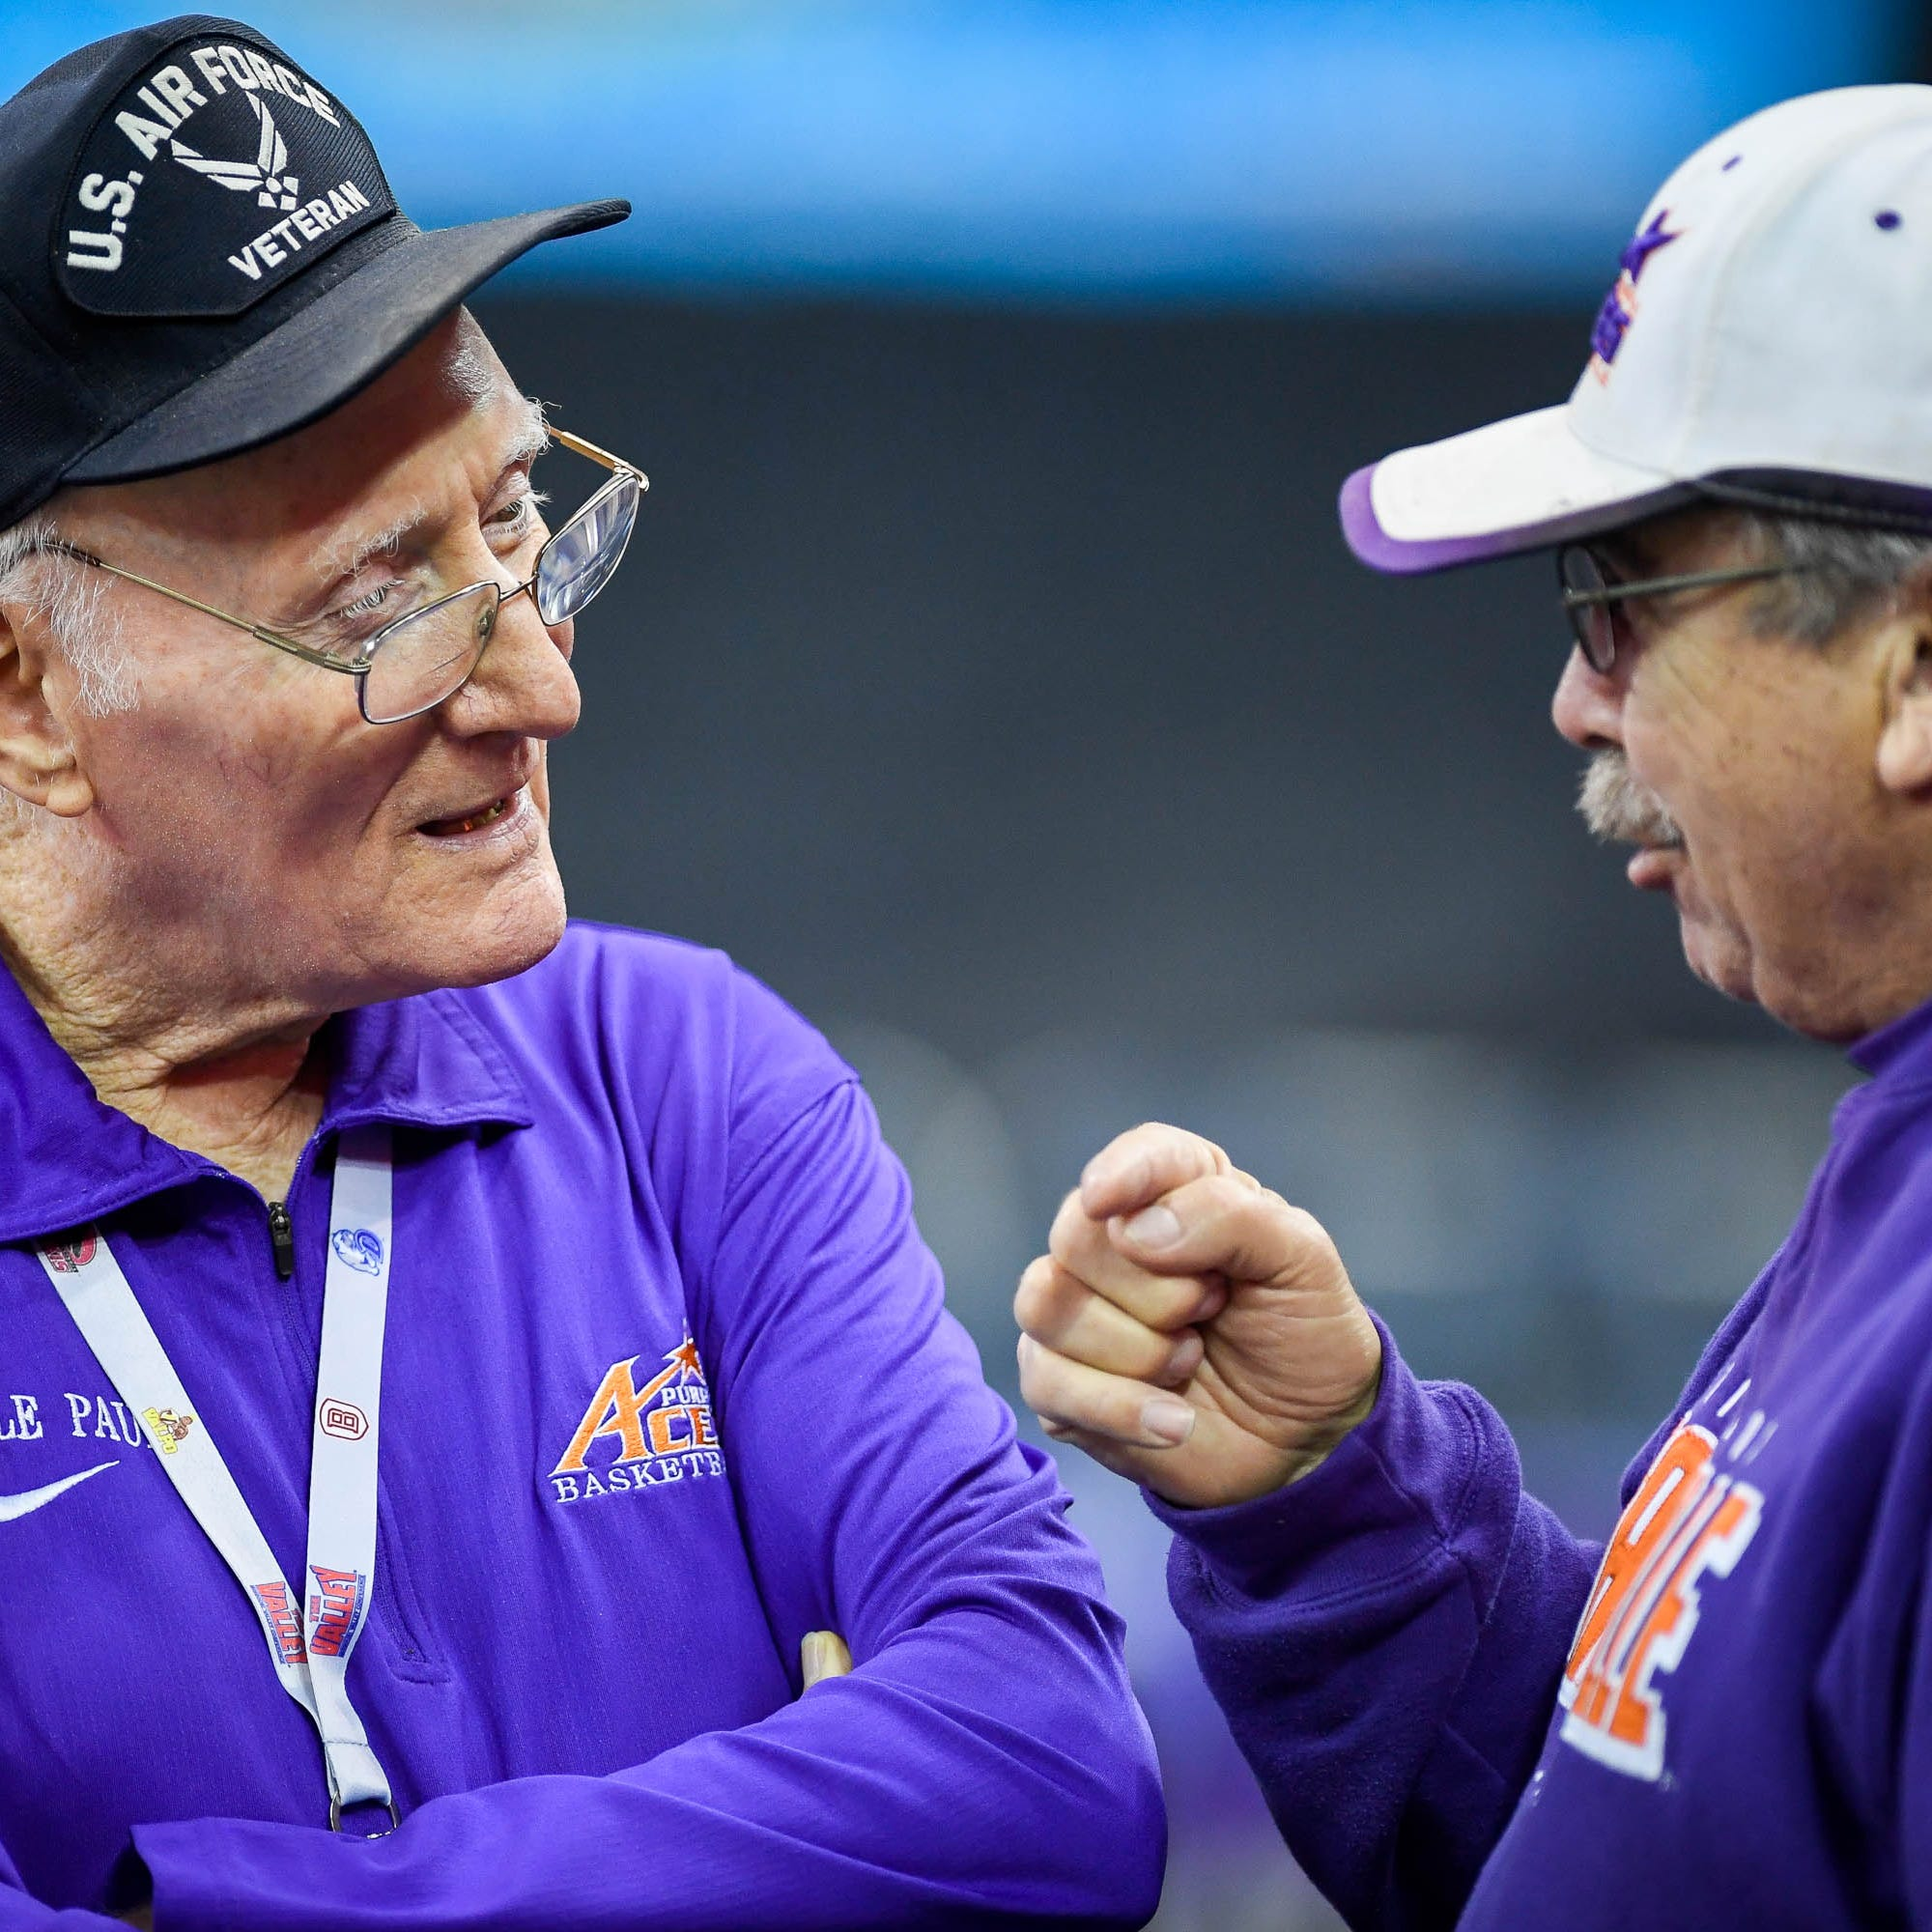 Behind the fandom of longtime Aces booster 'Purple Paul' Werner